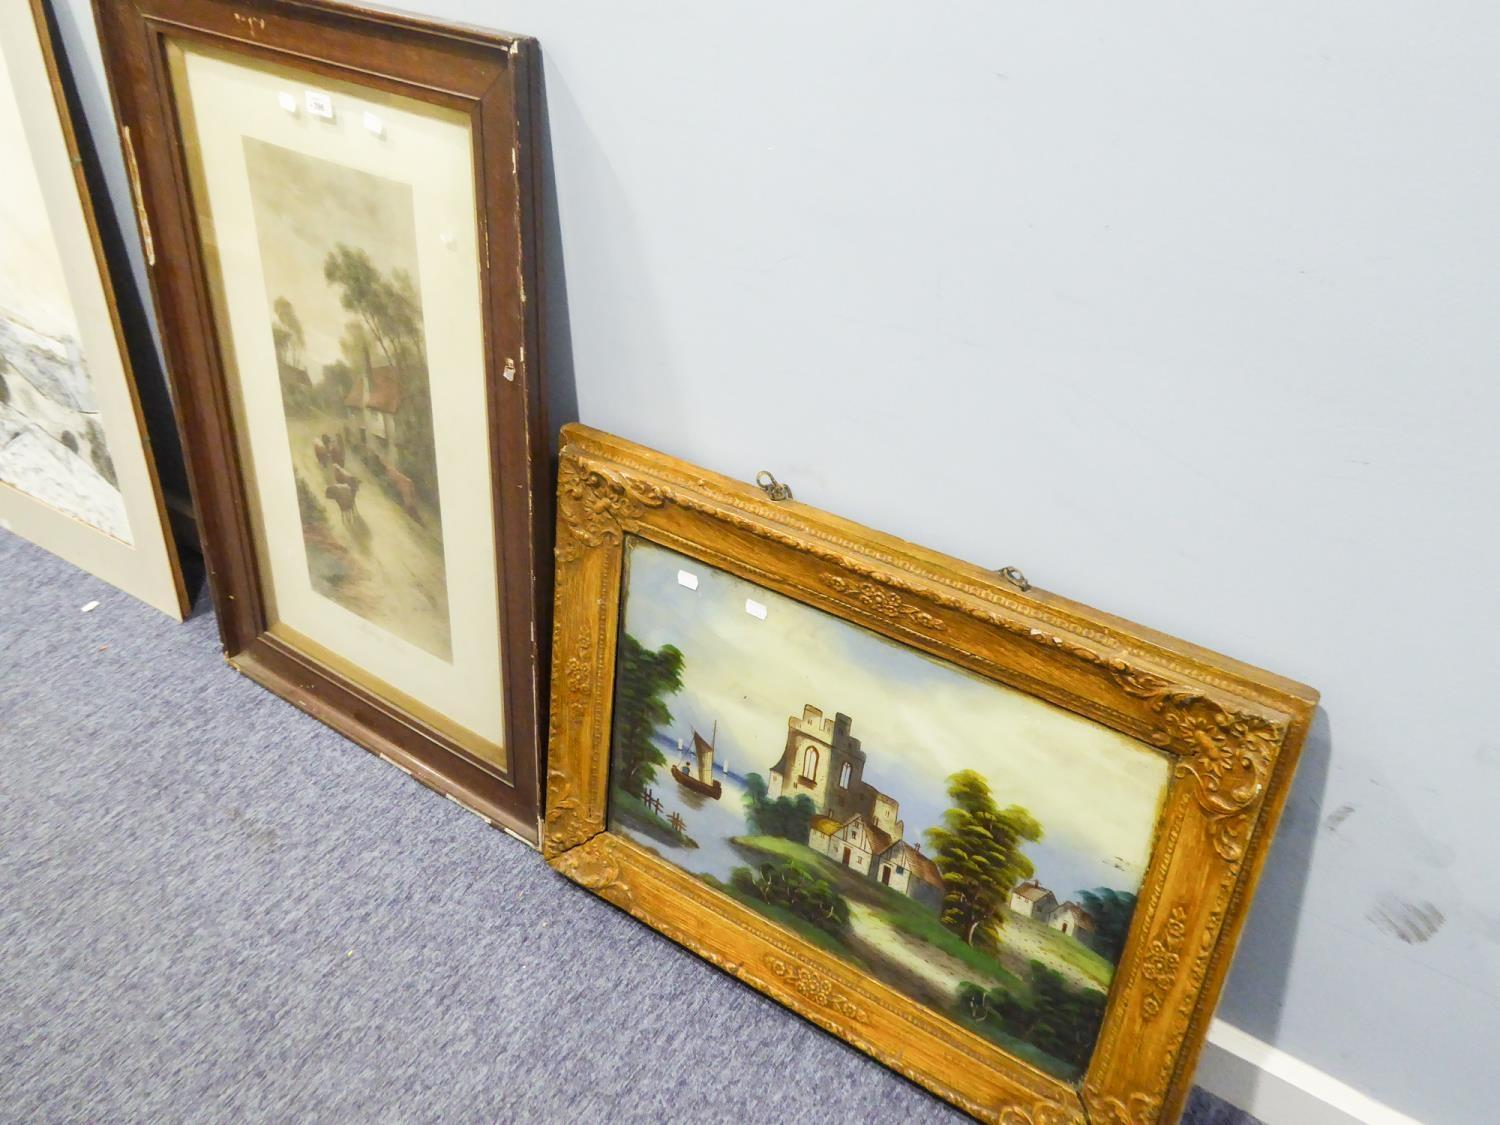 Lot 396 - VICTORIAN MEZZOTINT, 'MILKING TIME' in oak frame, and a NAÏVE PAINTING ON GLASS, river landscape, (